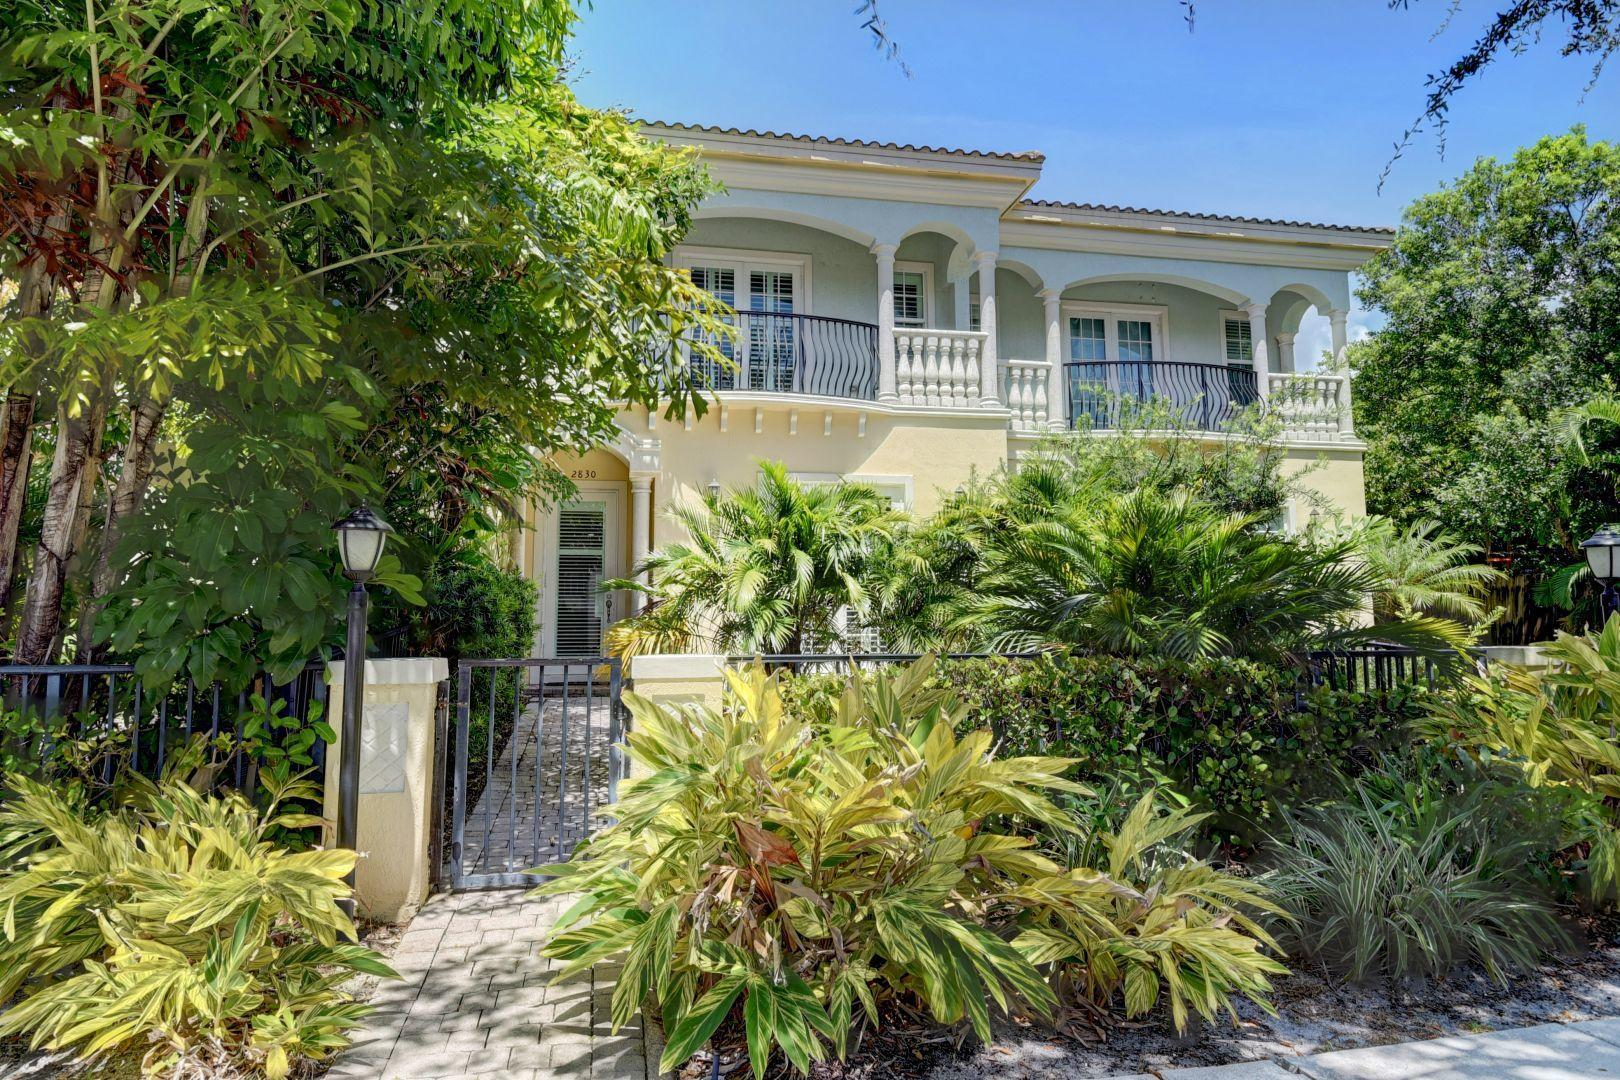 Home for sale in Tropic Isle Townhomes Delray Beach Florida